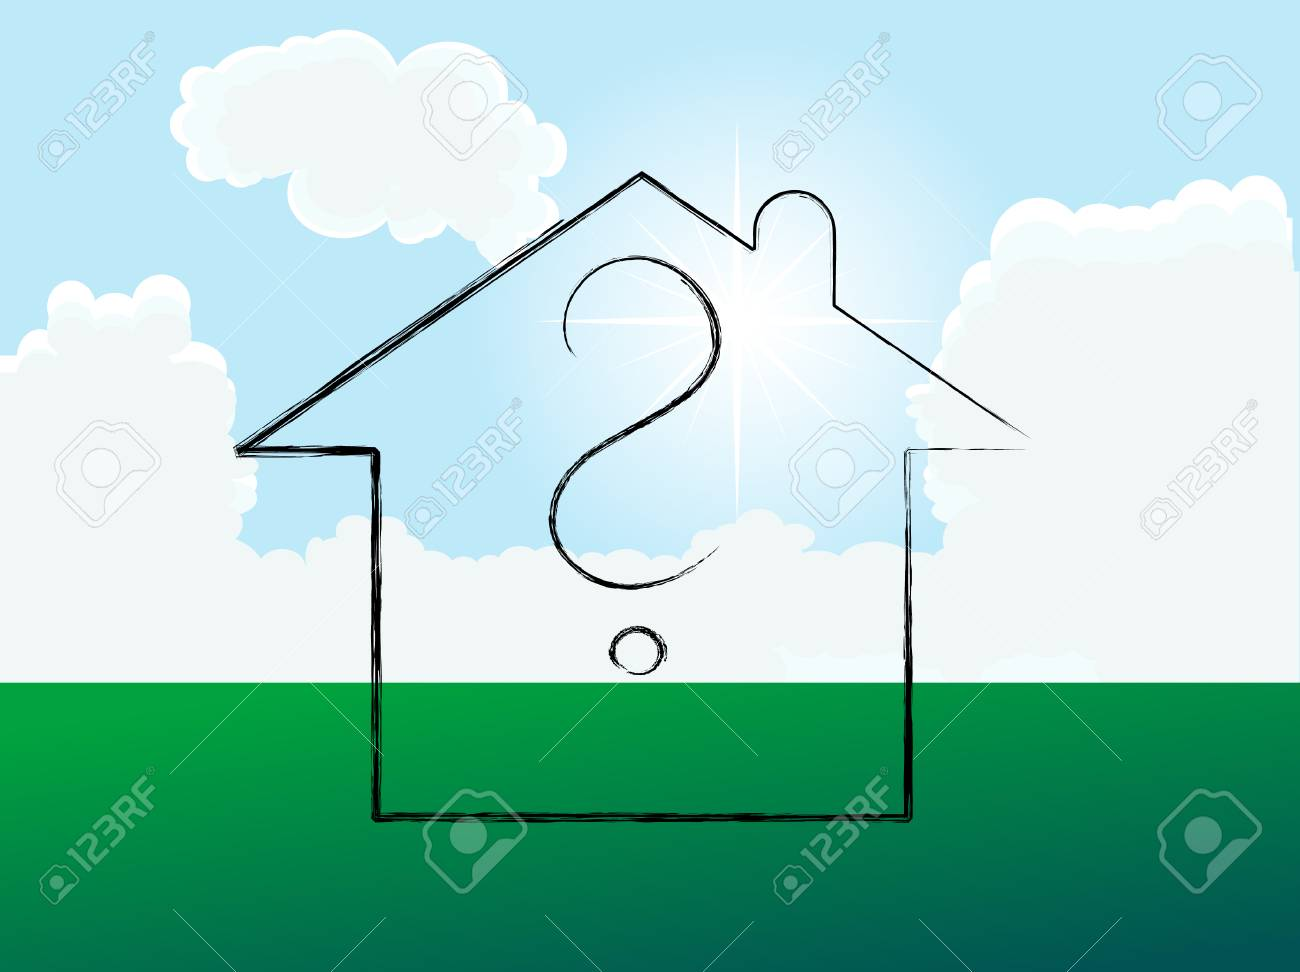 Home on the meadow - vector illustration Stock Vector - 5617581